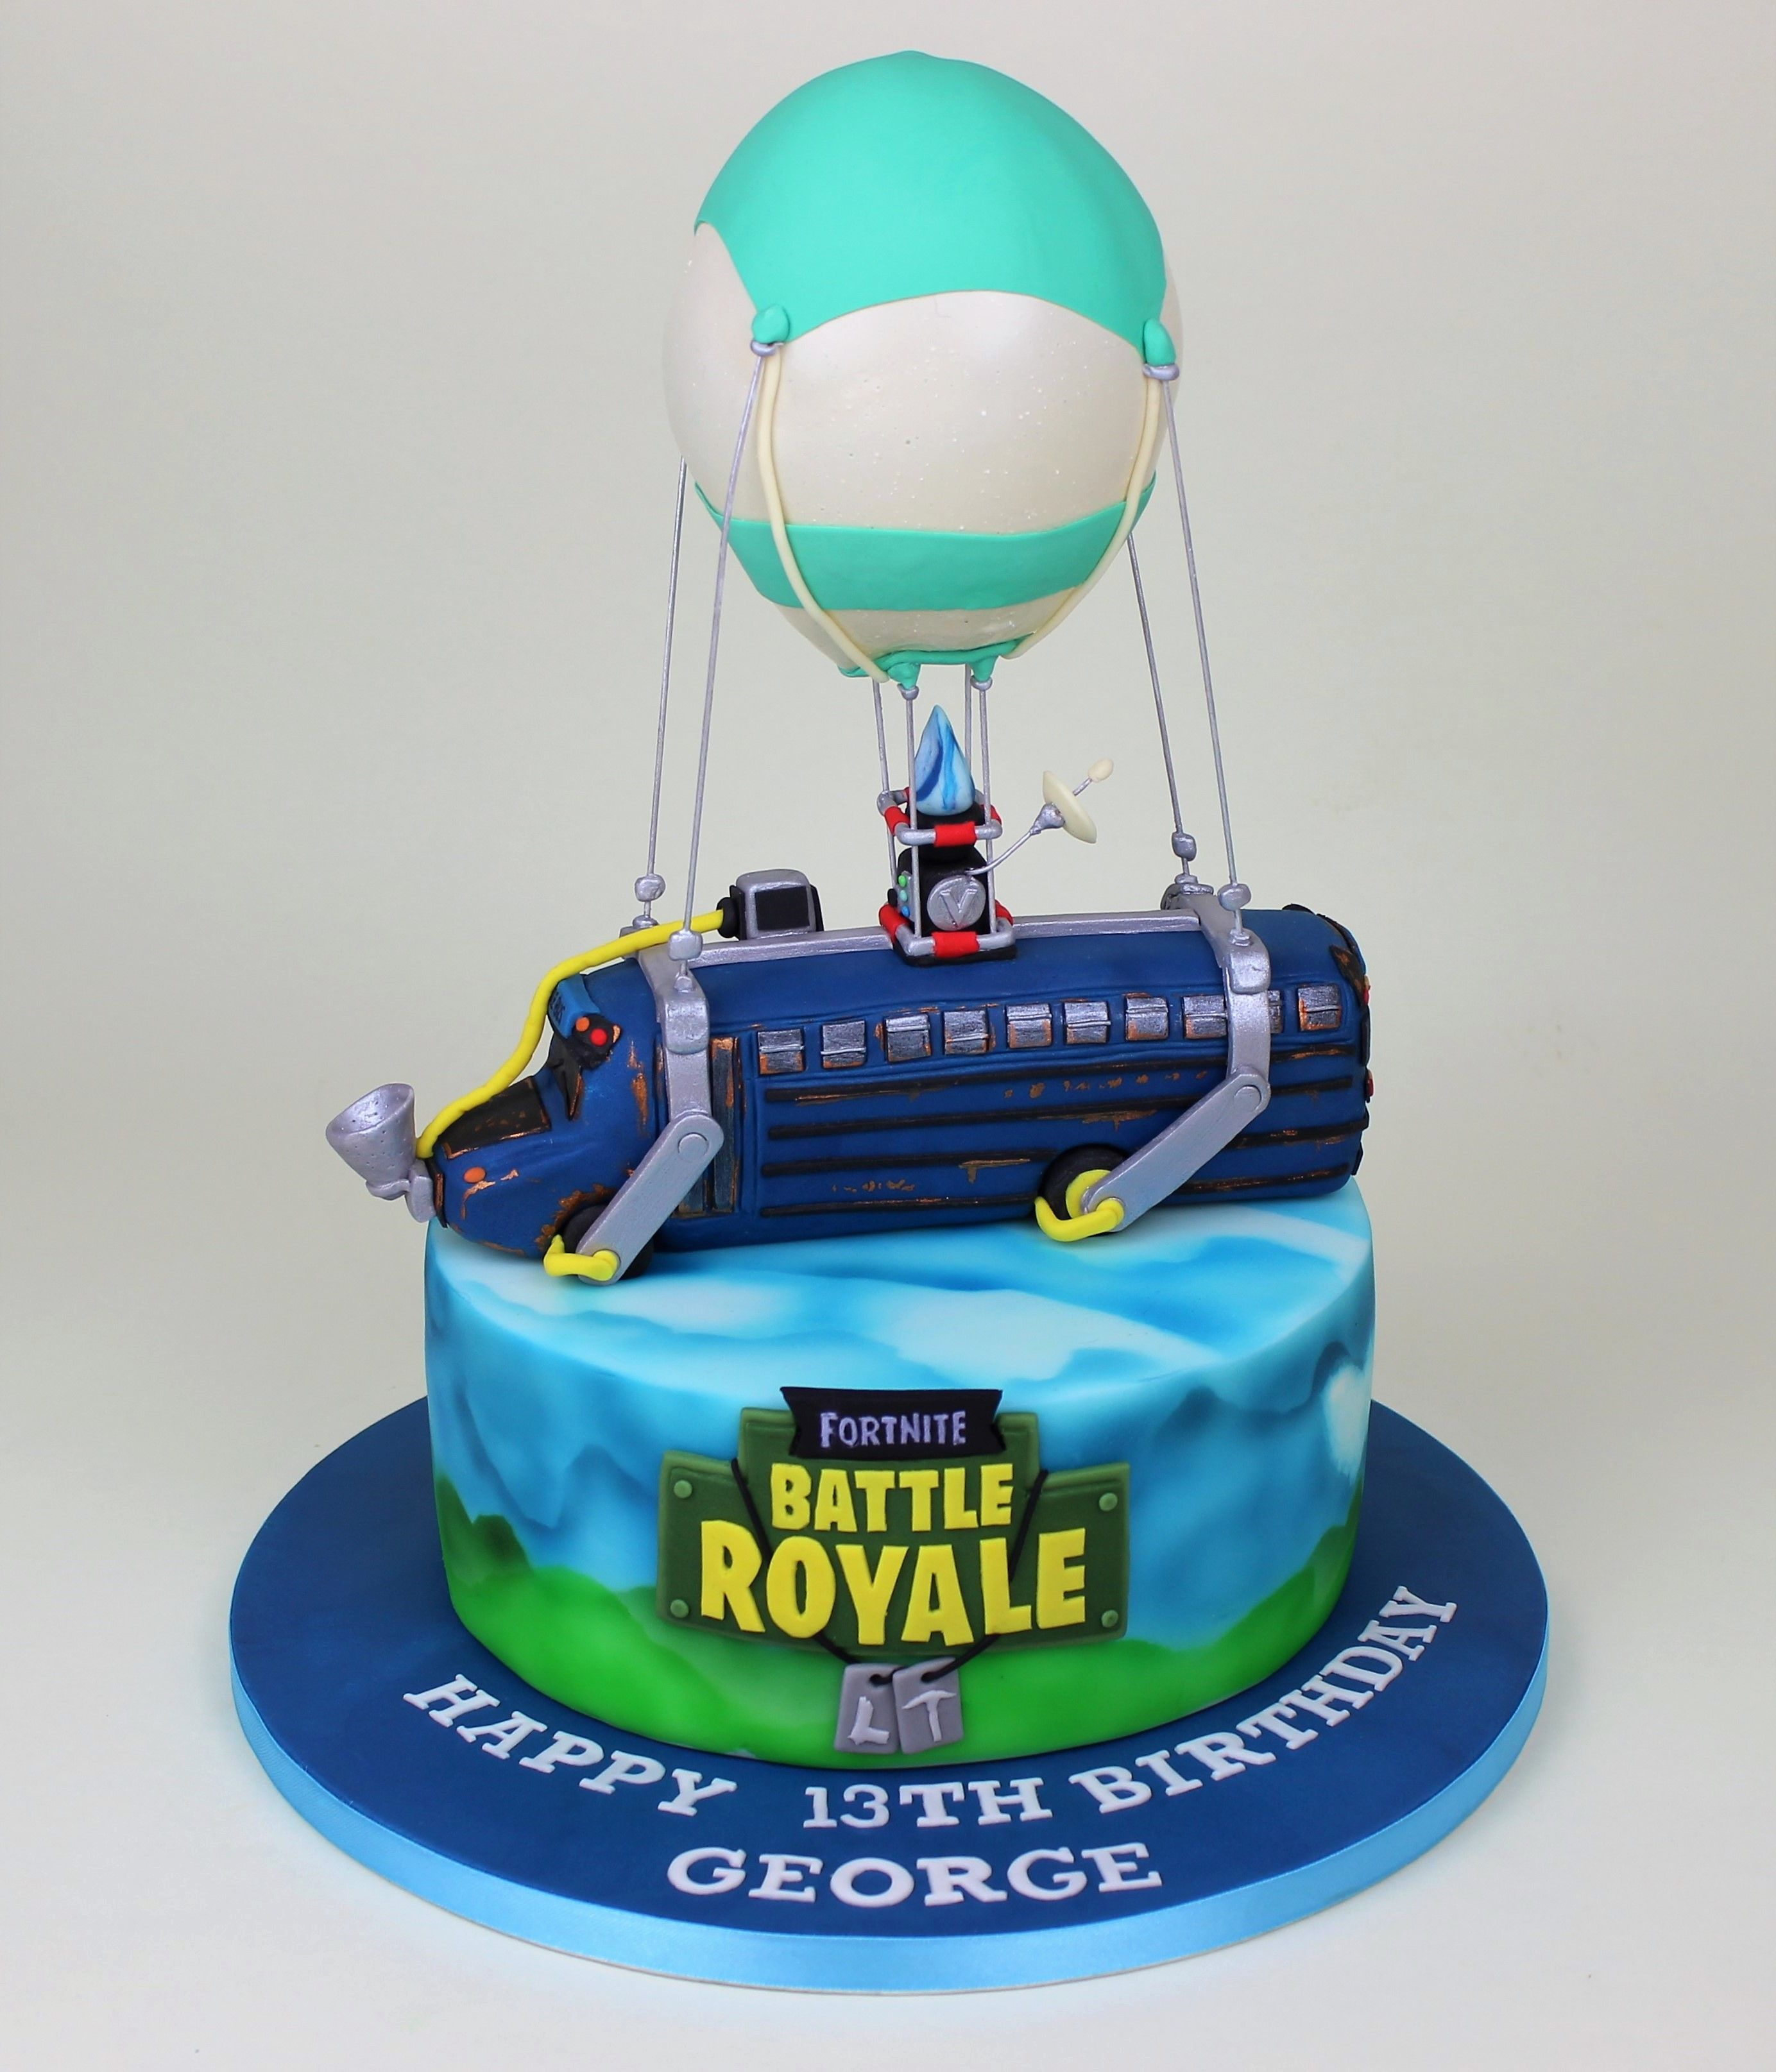 Battle Bus From Fornite Battle Royale Cake With Images 10